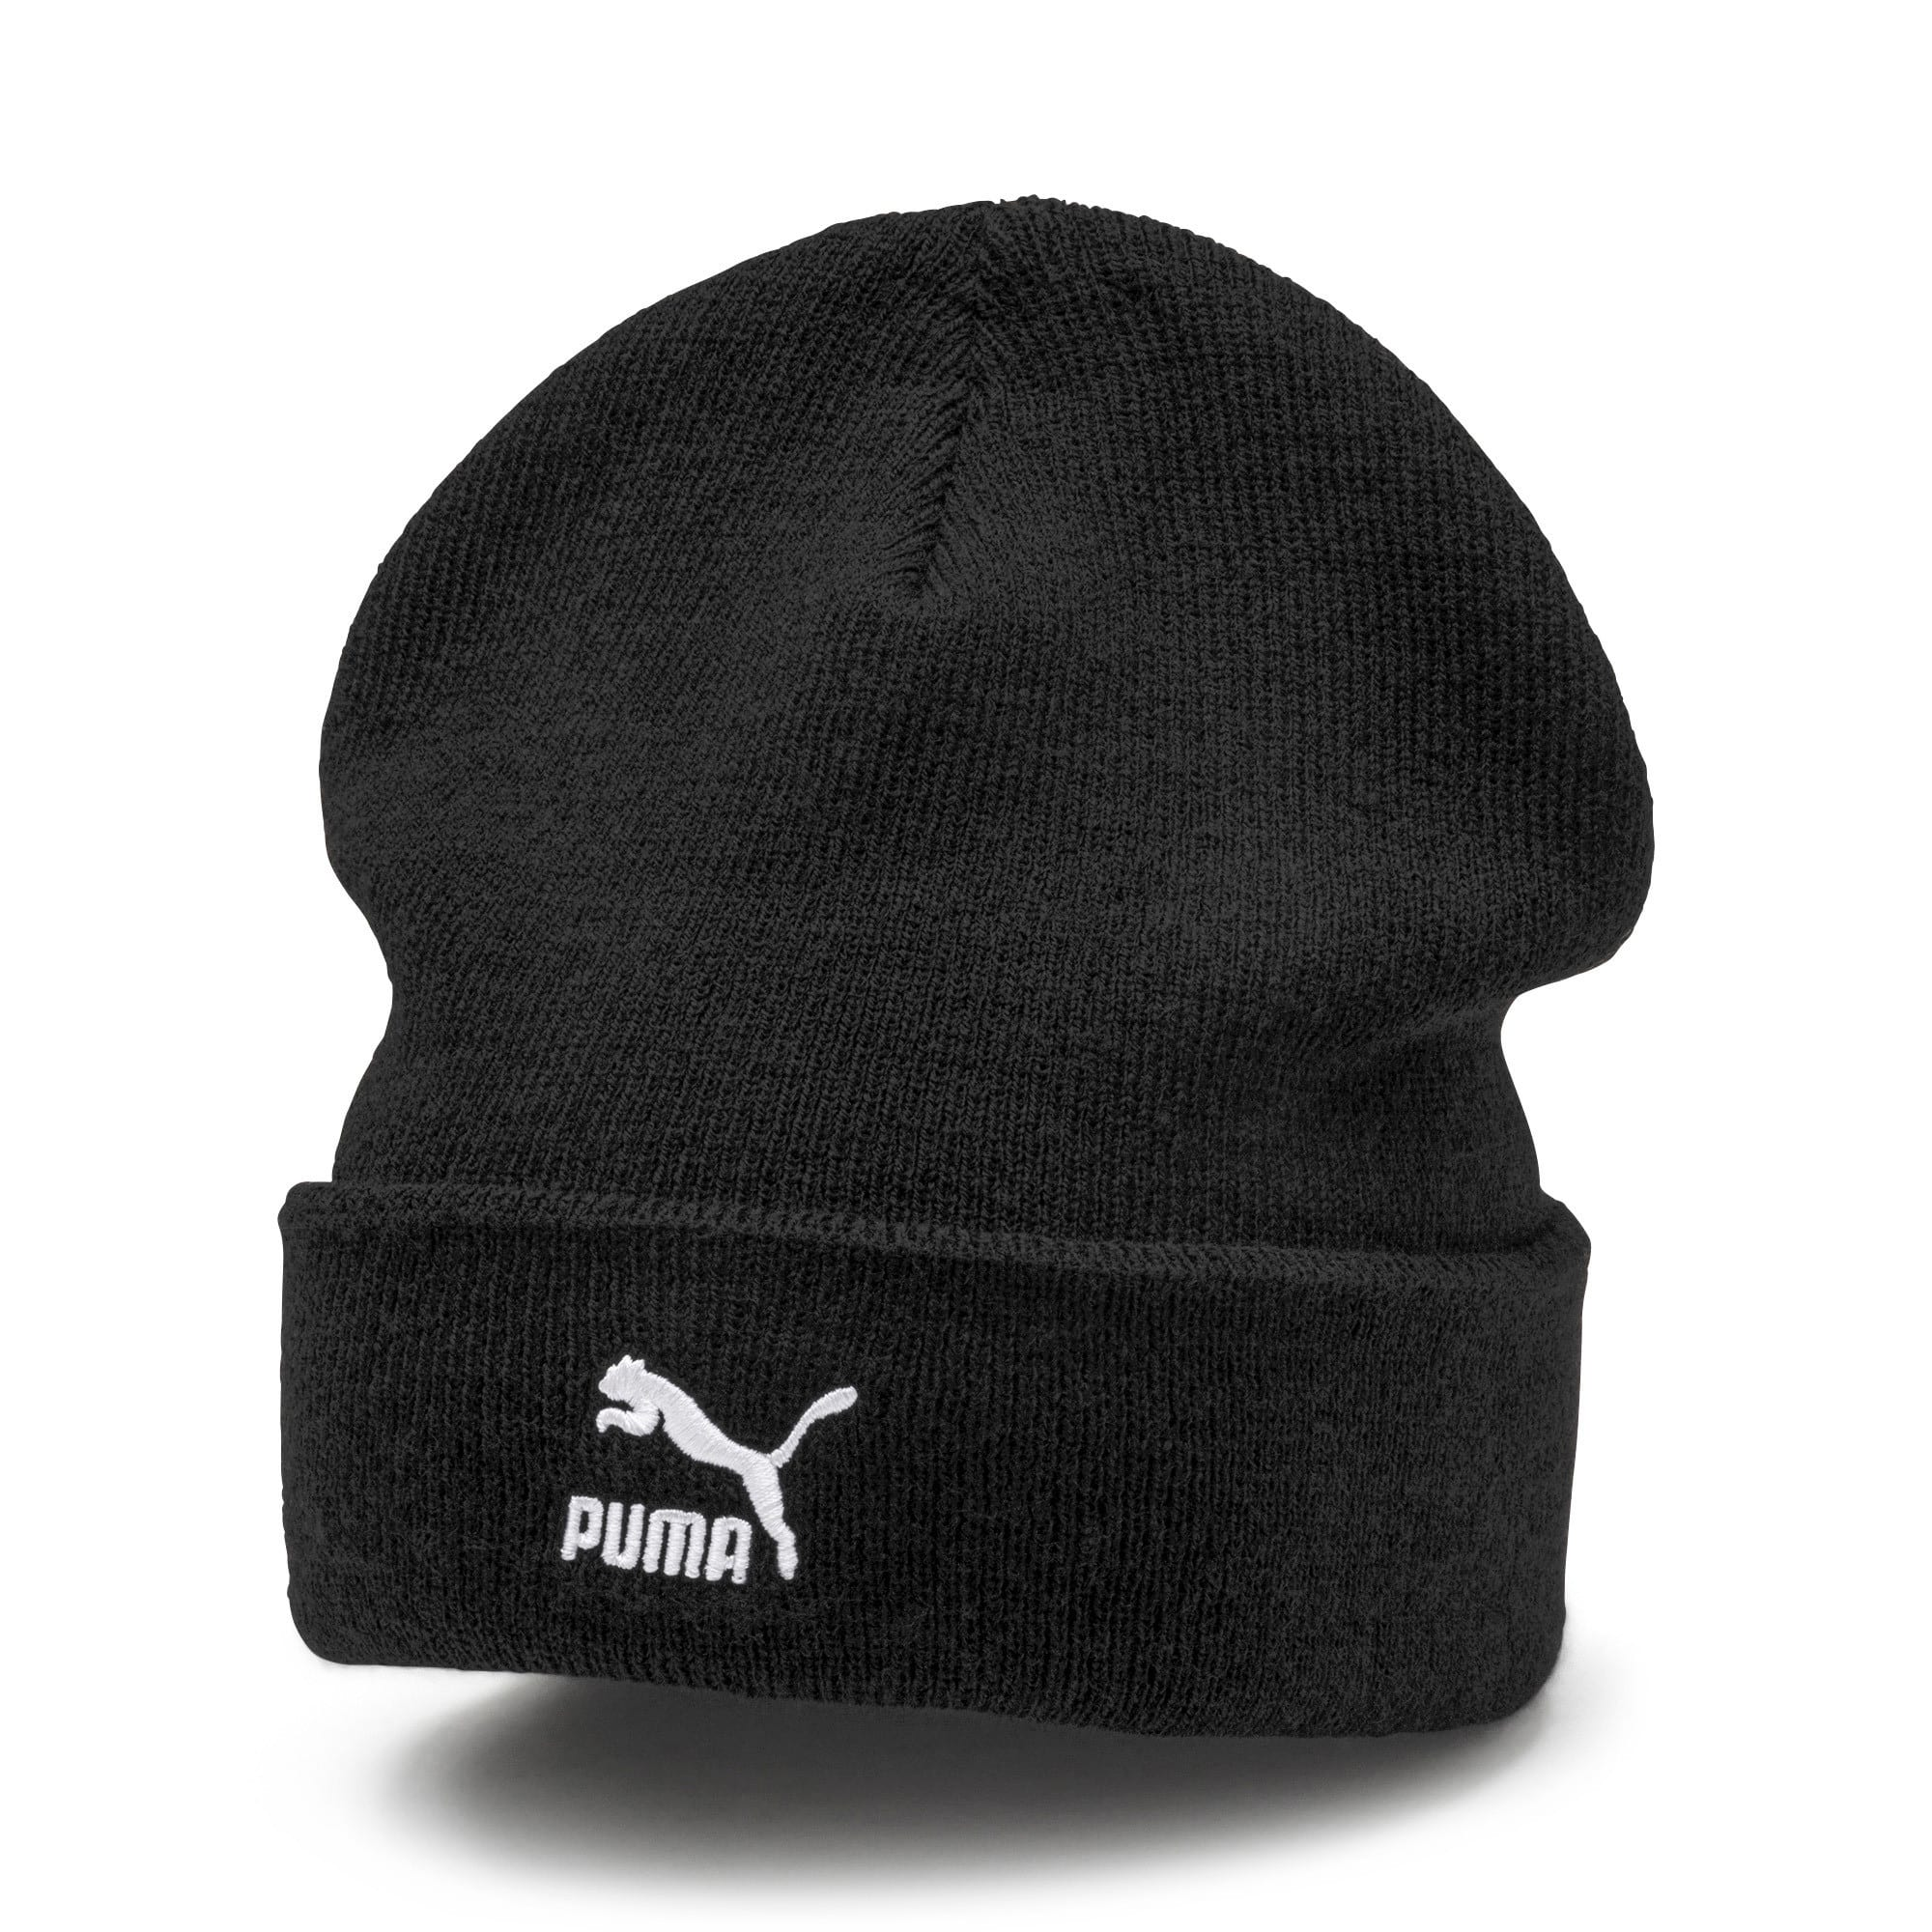 Thumbnail 1 of Archive Mid Fit Beanie, Puma Black, medium